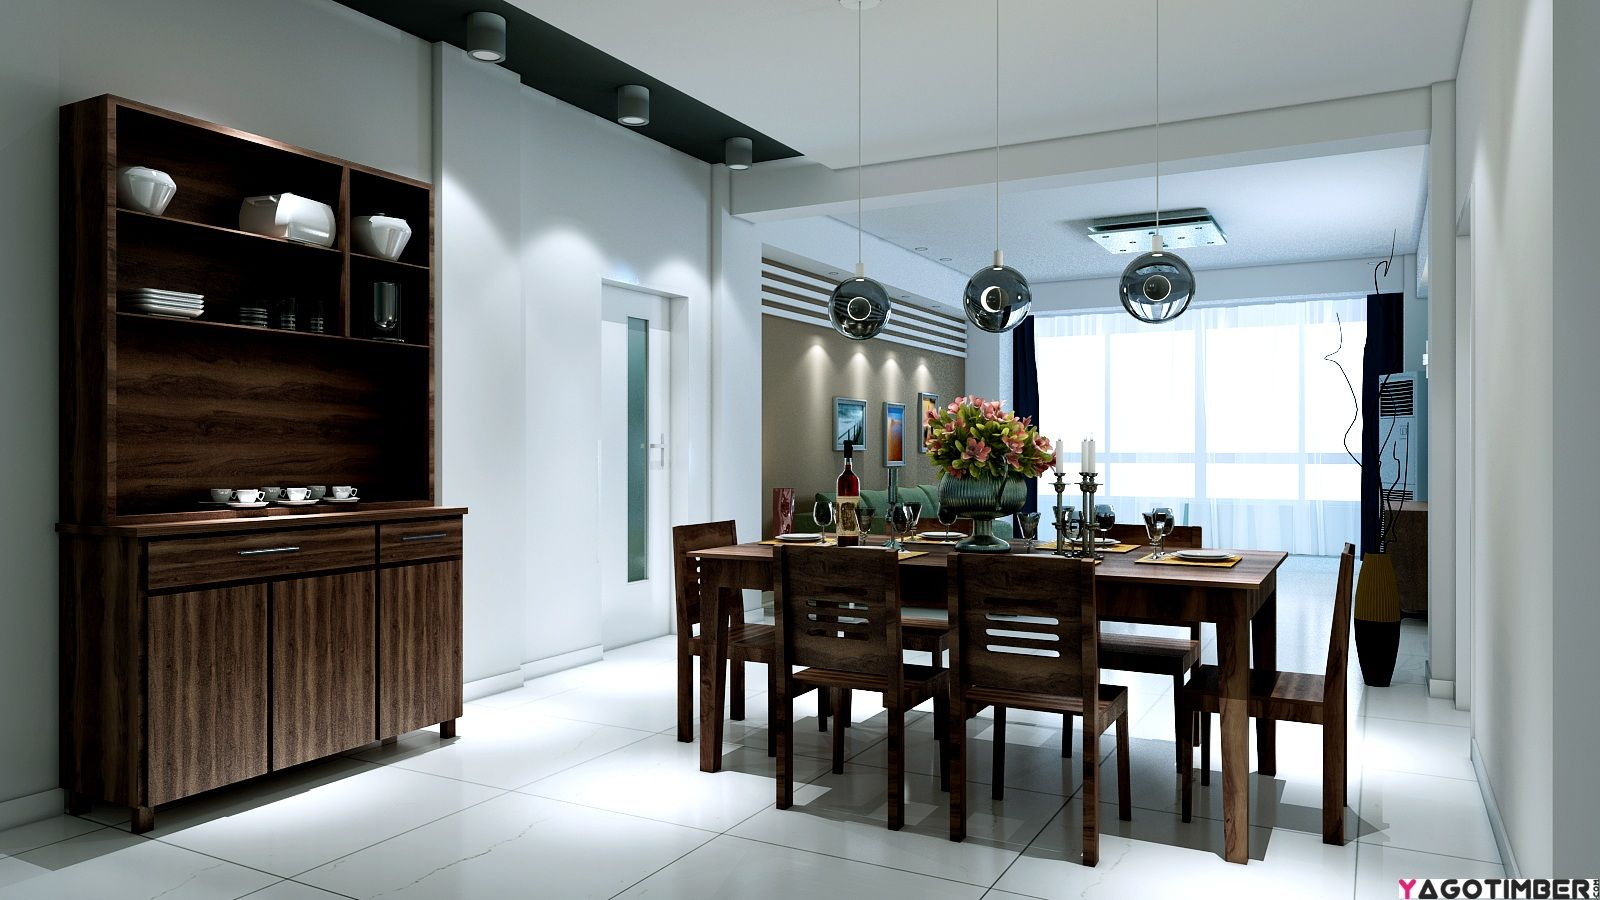 DiningRoom # DesignIdeas for Your Dream Home Exclusively on ...